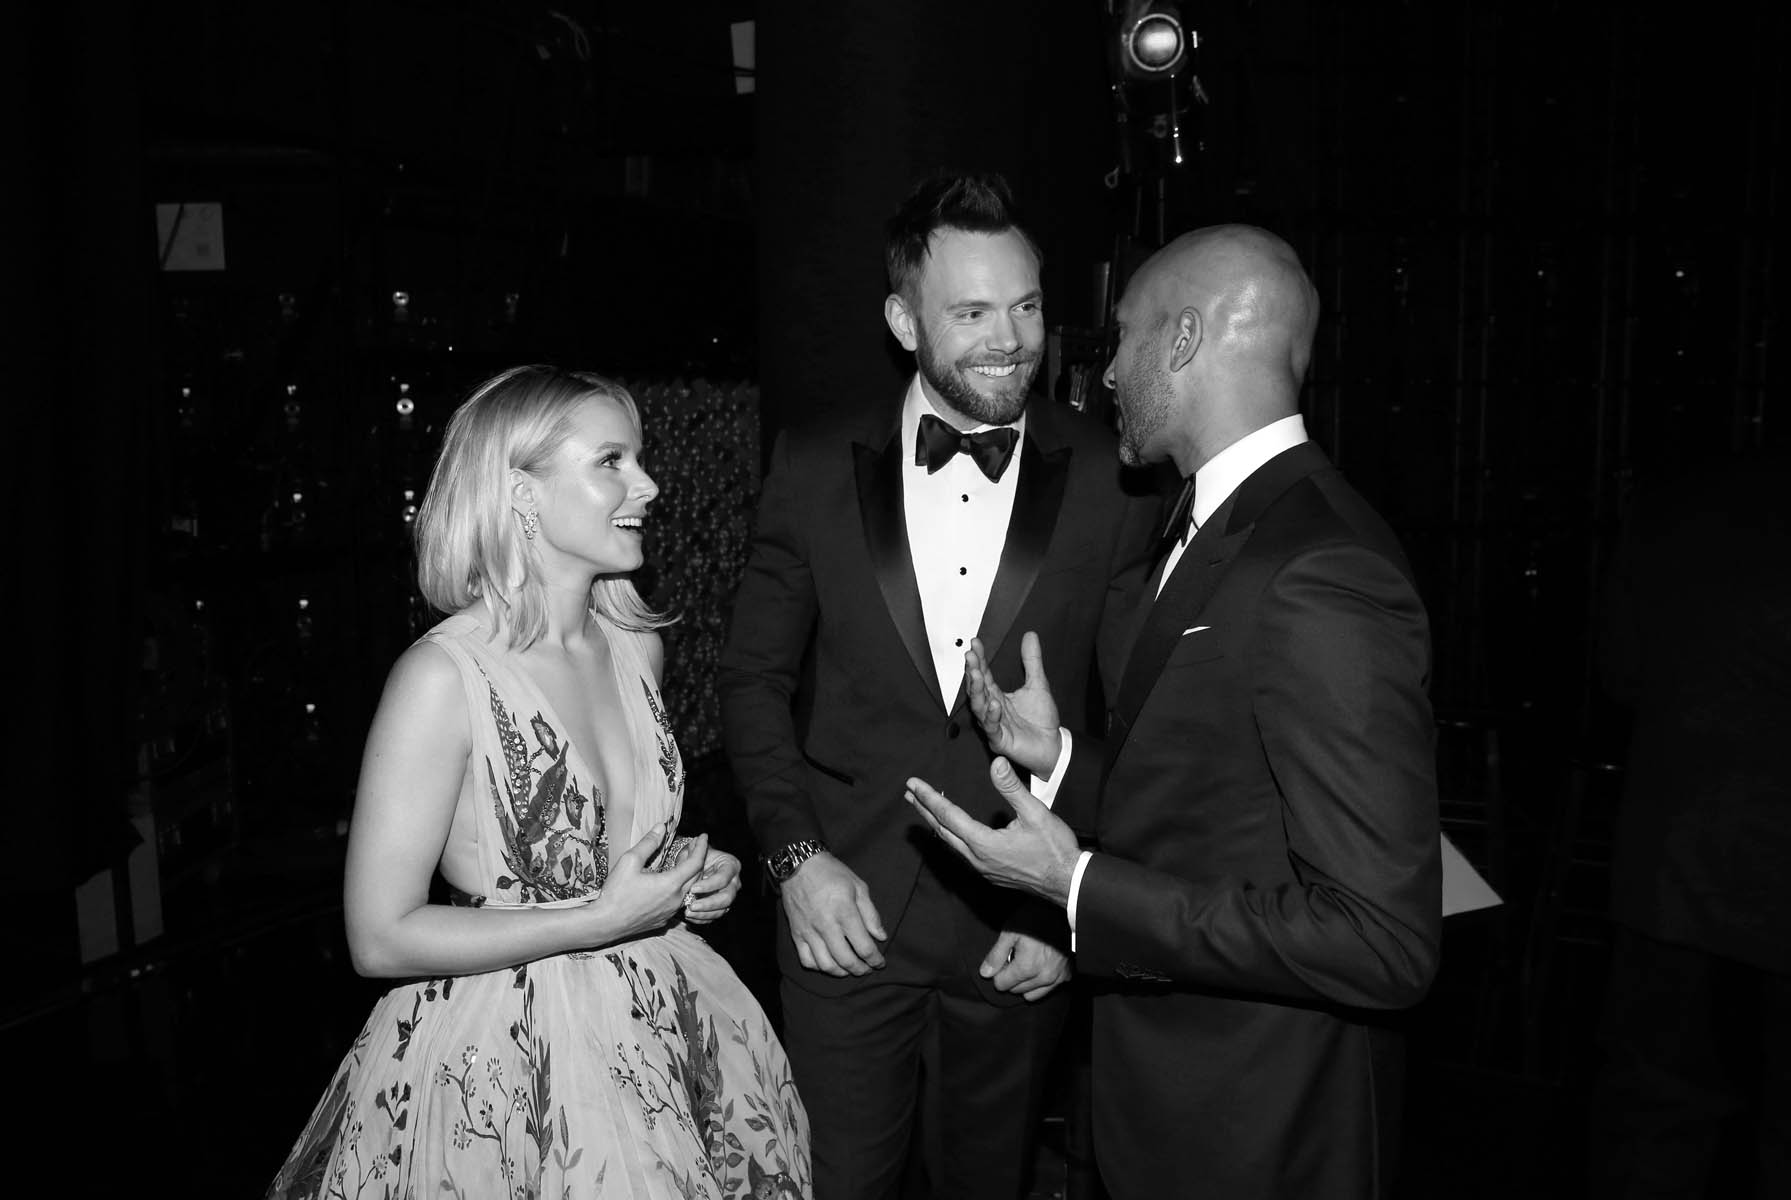 Kristen Bell, from left, Joel McHale and Keegan-Michael Key  backstage at the 68th Primetime Emmy Awards on Sunday, Sept. 18, 2016, at the Microsoft Theater in Los Angeles. (Photo by Matt Sayles/Invision for the Television Academy/AP Images)